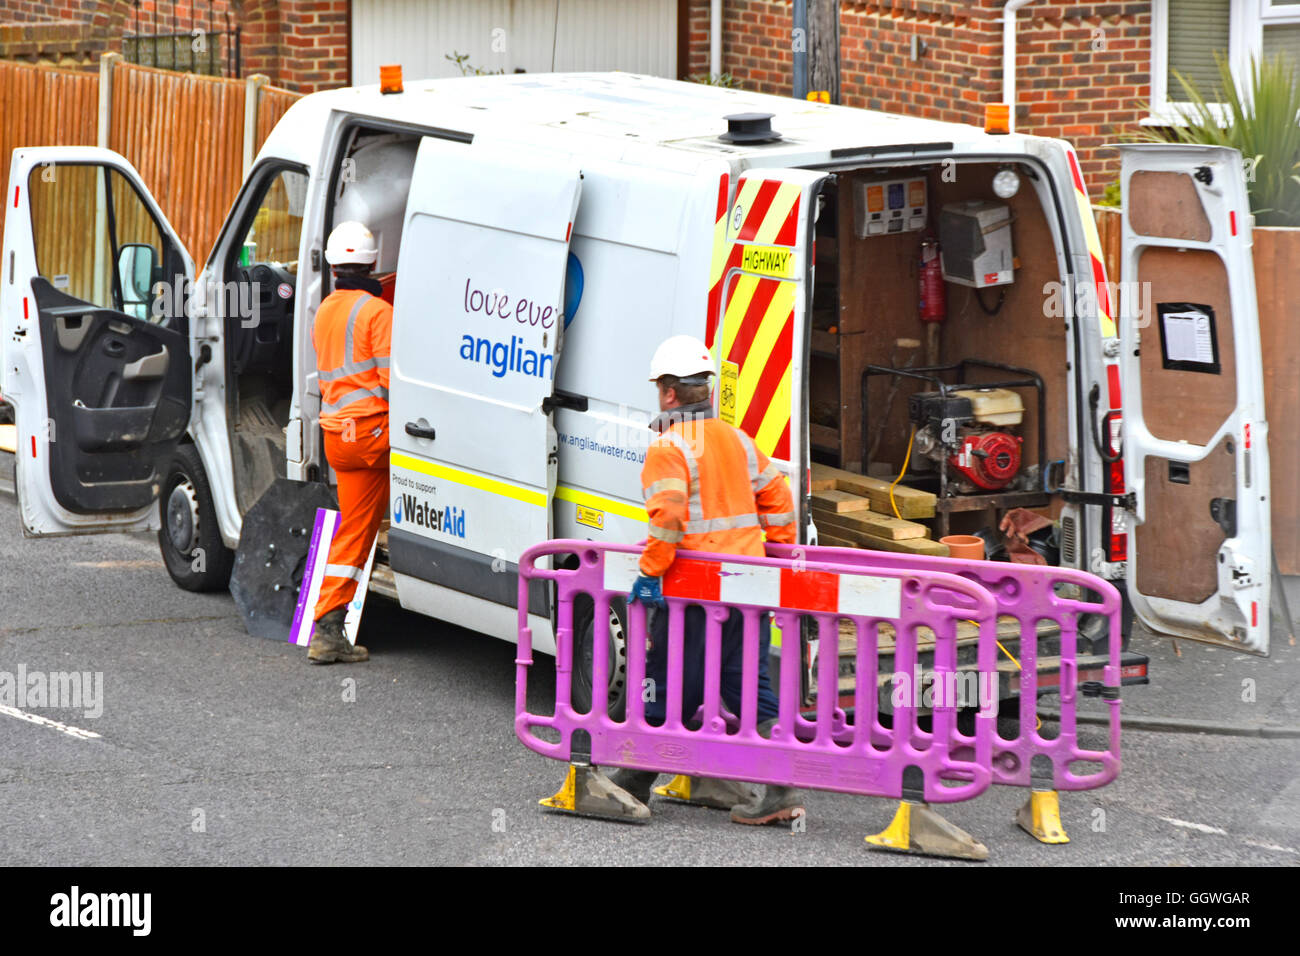 Anglian Water crew & van attending UK England street sewer connection to residential property preparing to dig - Stock Image